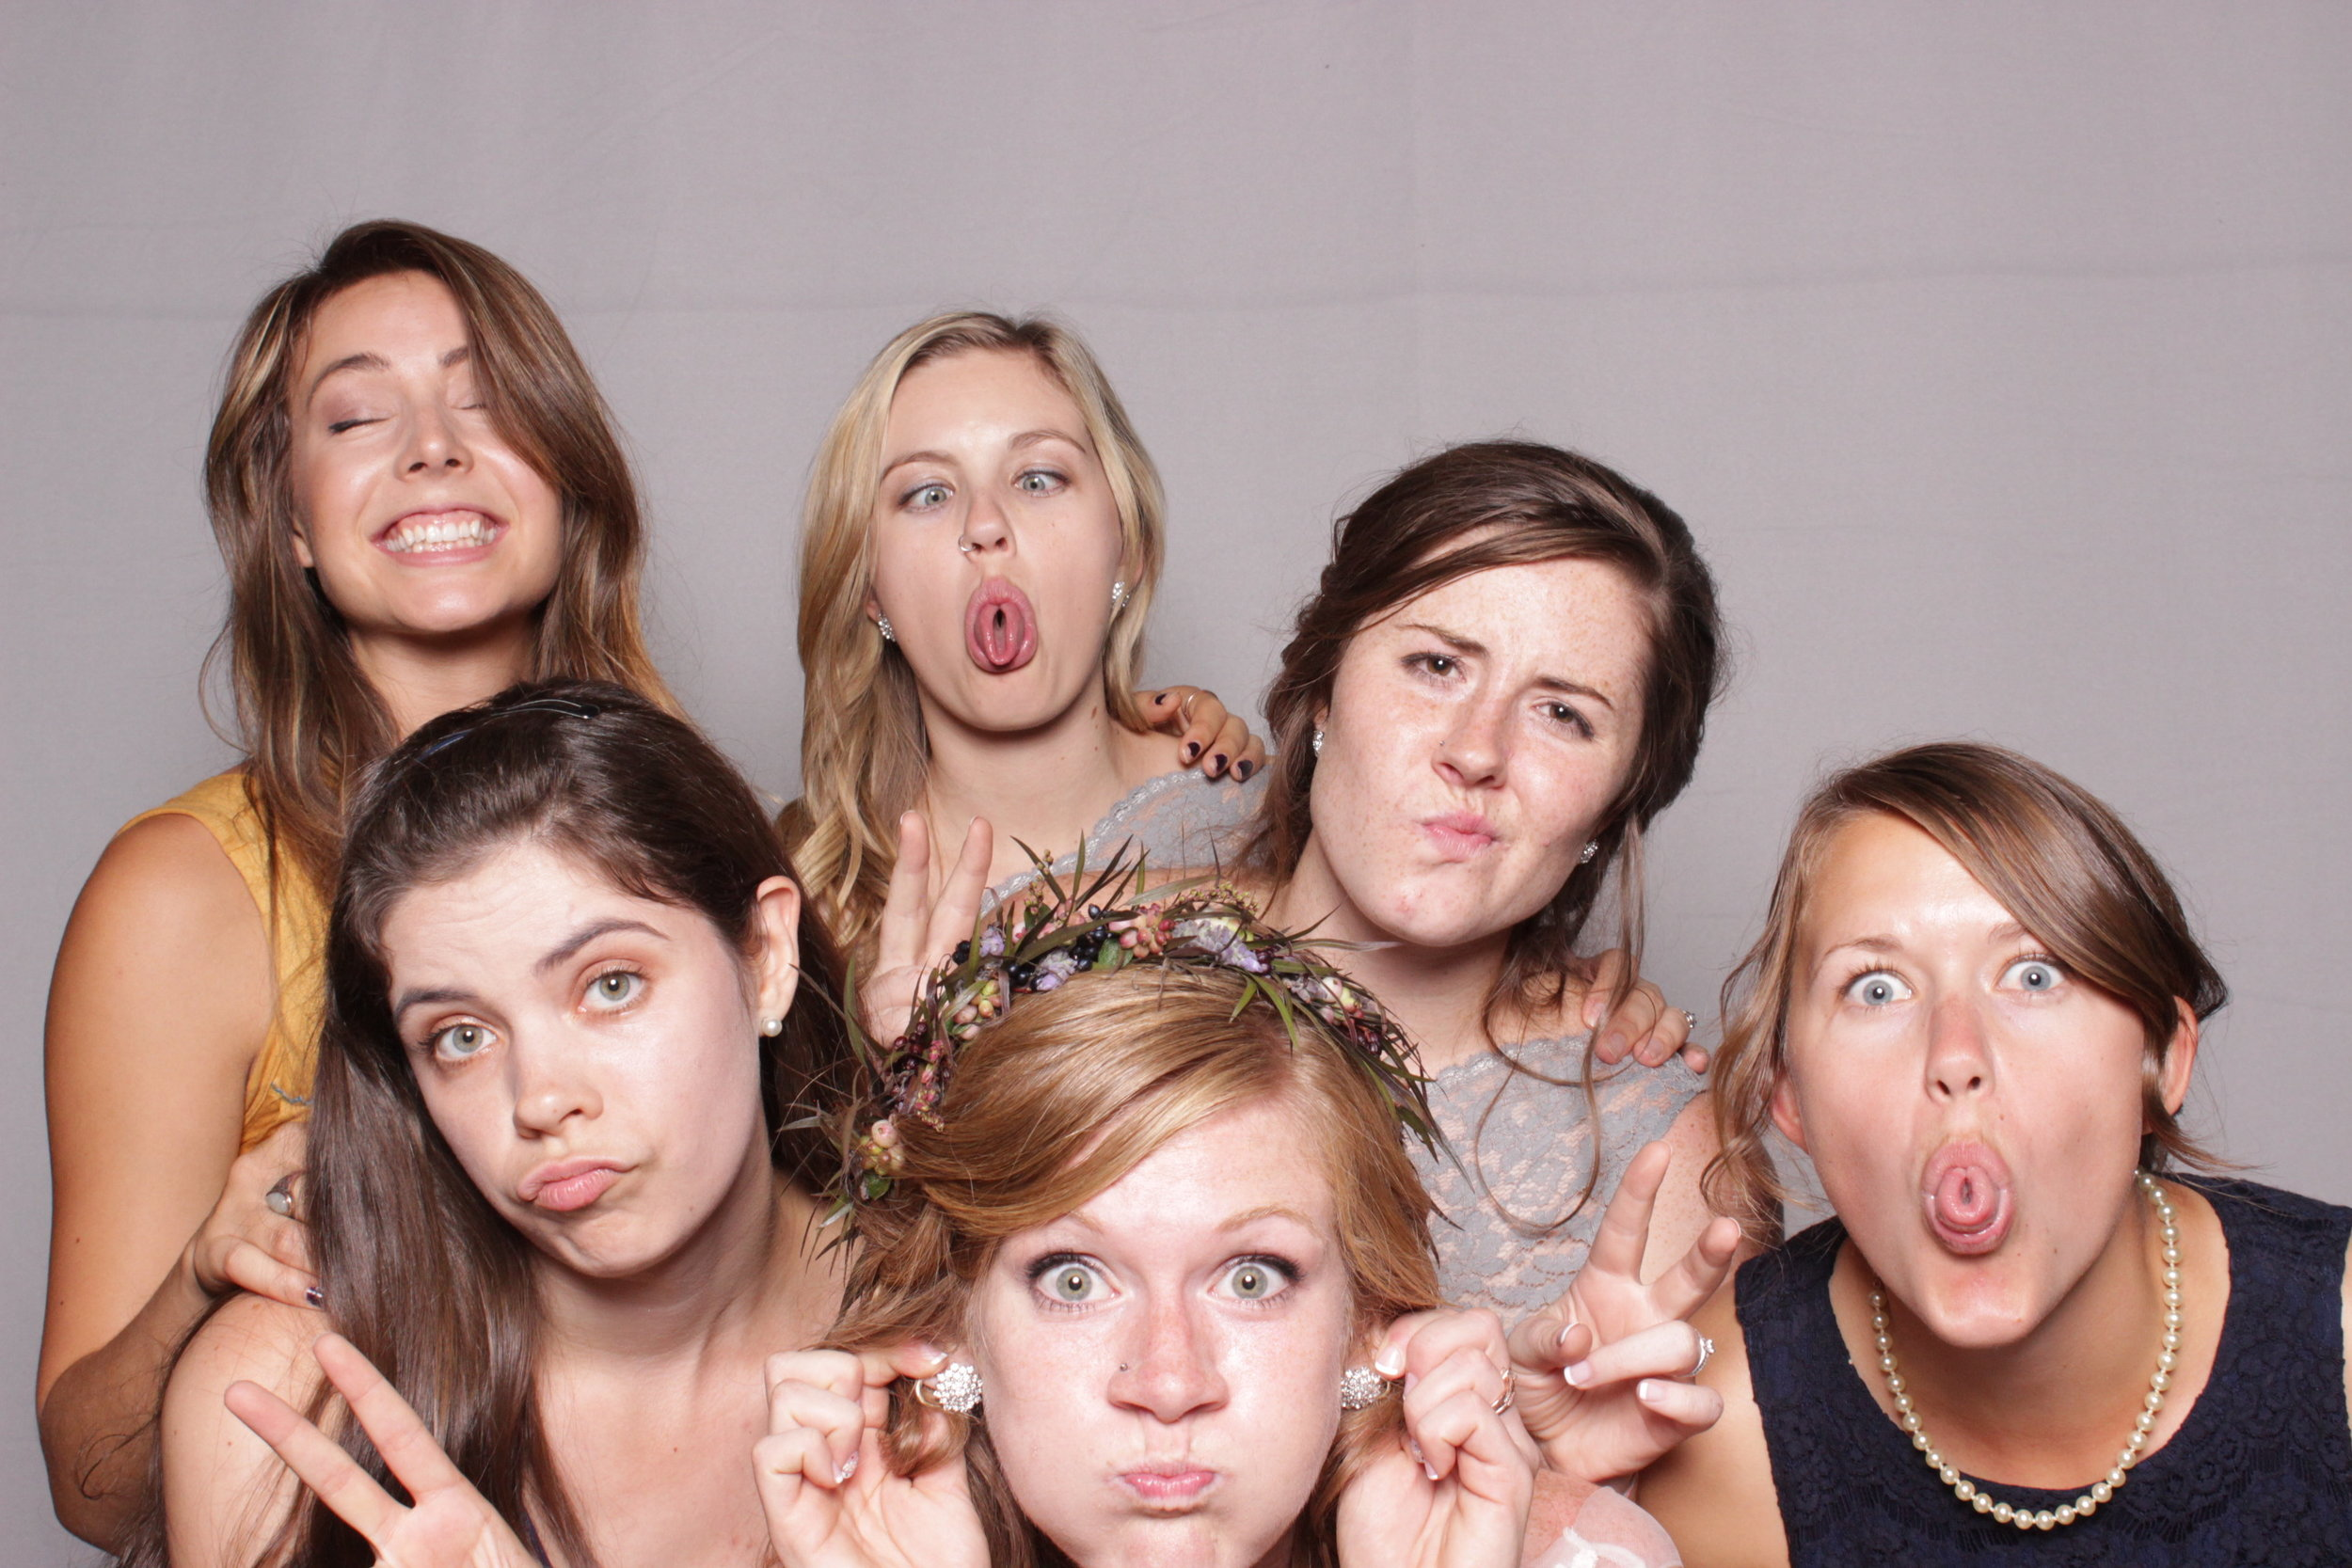 photo-booth-rental-chico-california-gale-vineyards-wedding-bridesmaids